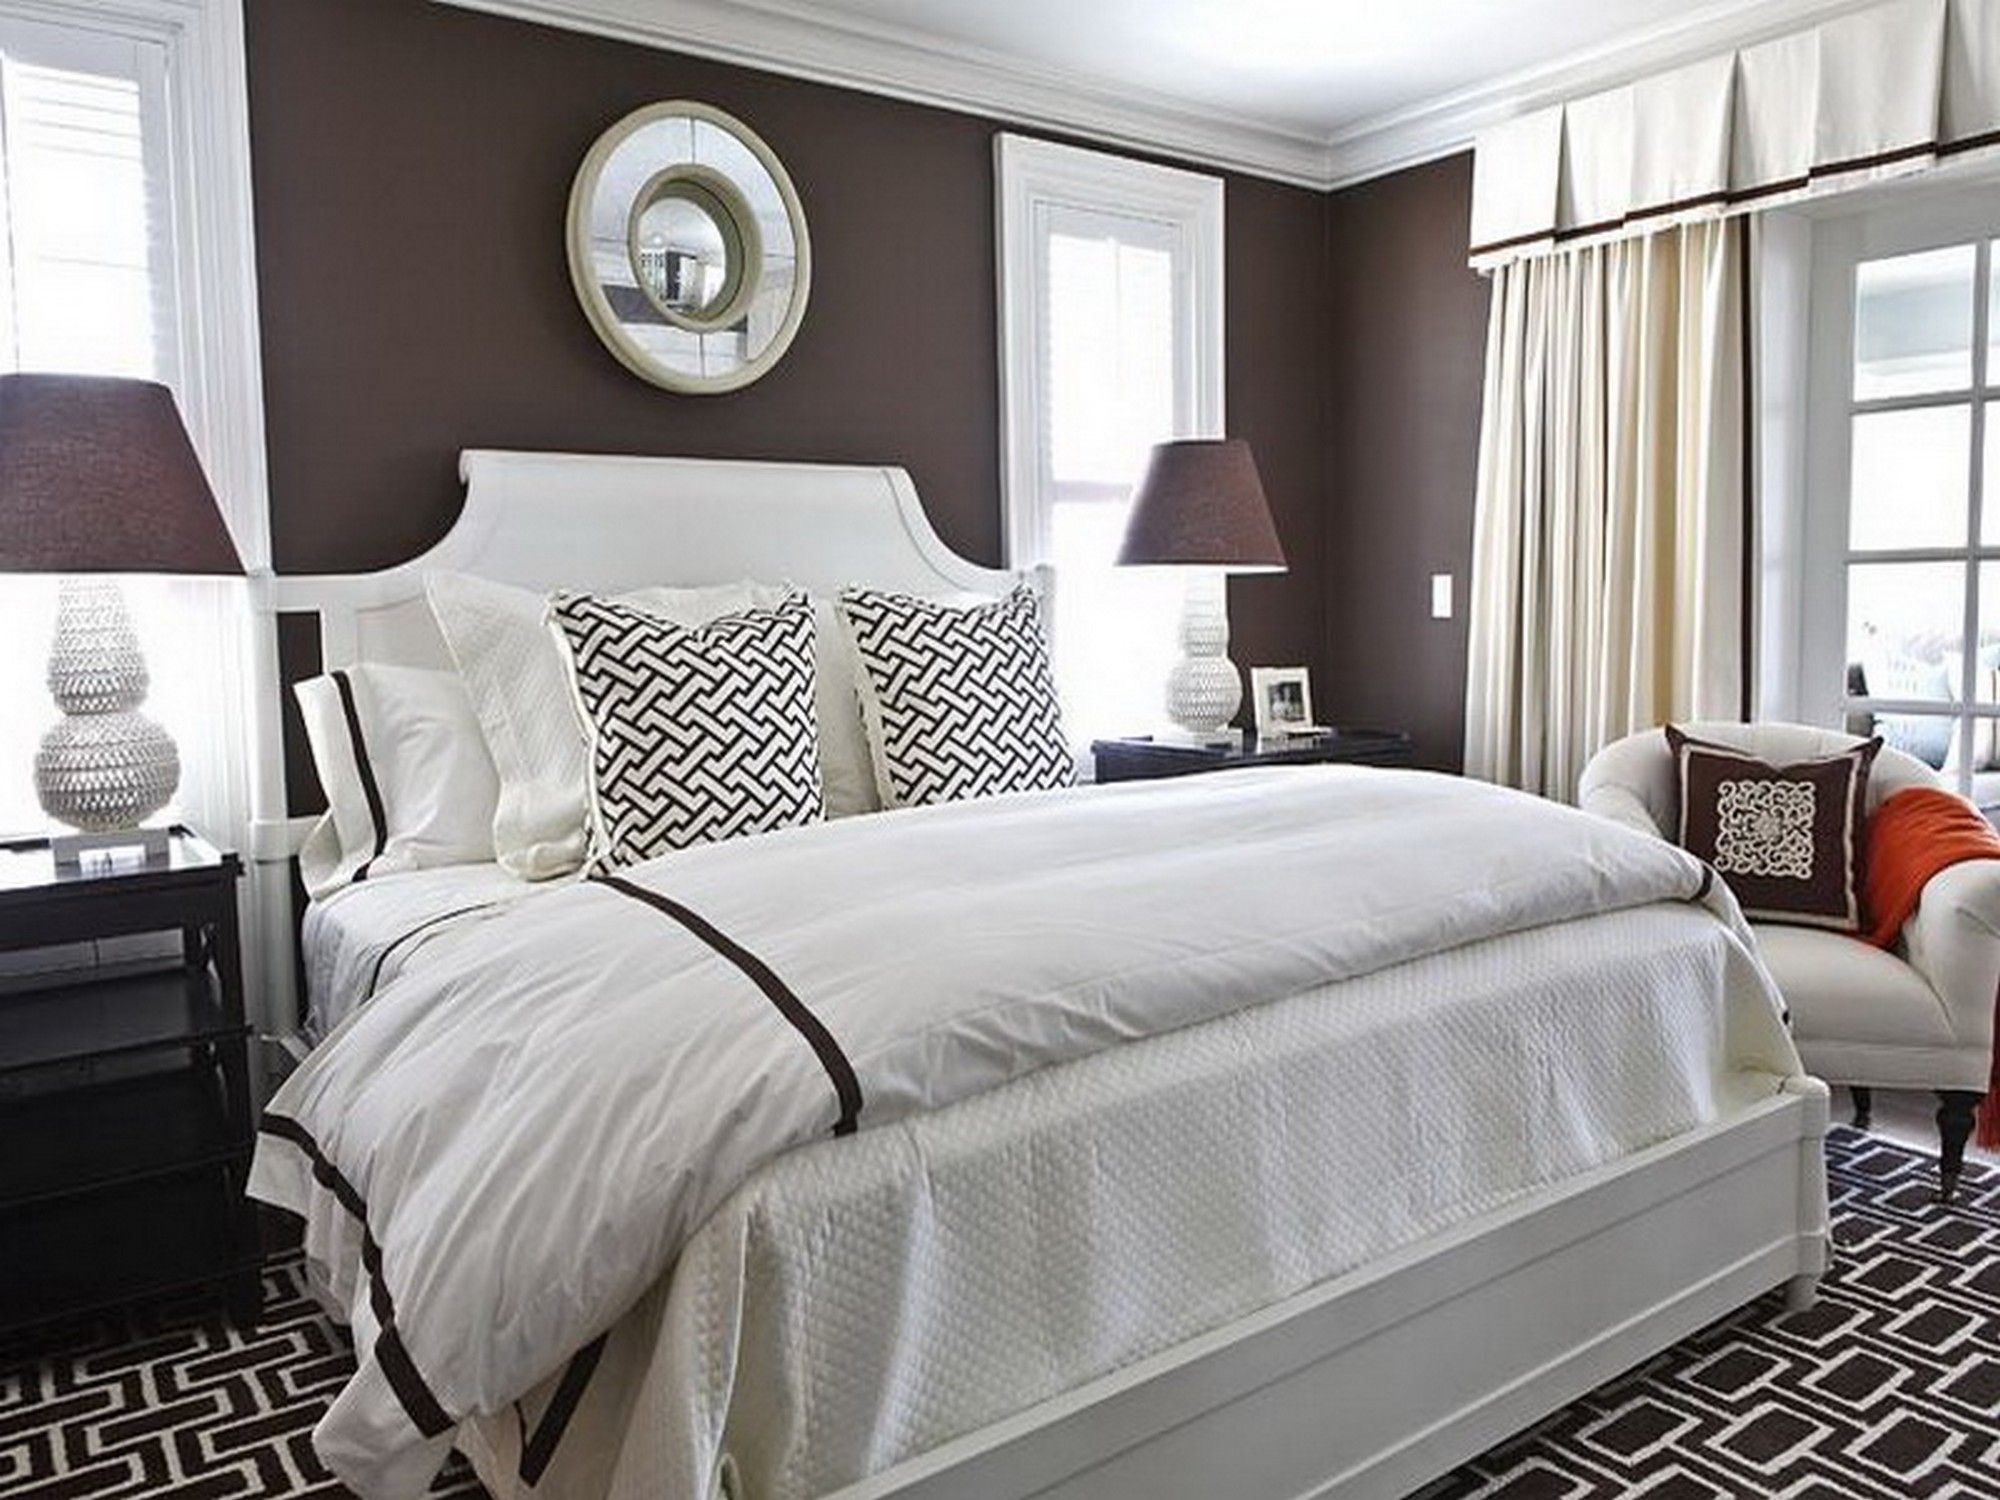 Bedroom, Bright Gray Paint Colors For Small Bedroom Decorating Ideas With Decorative Round Wall